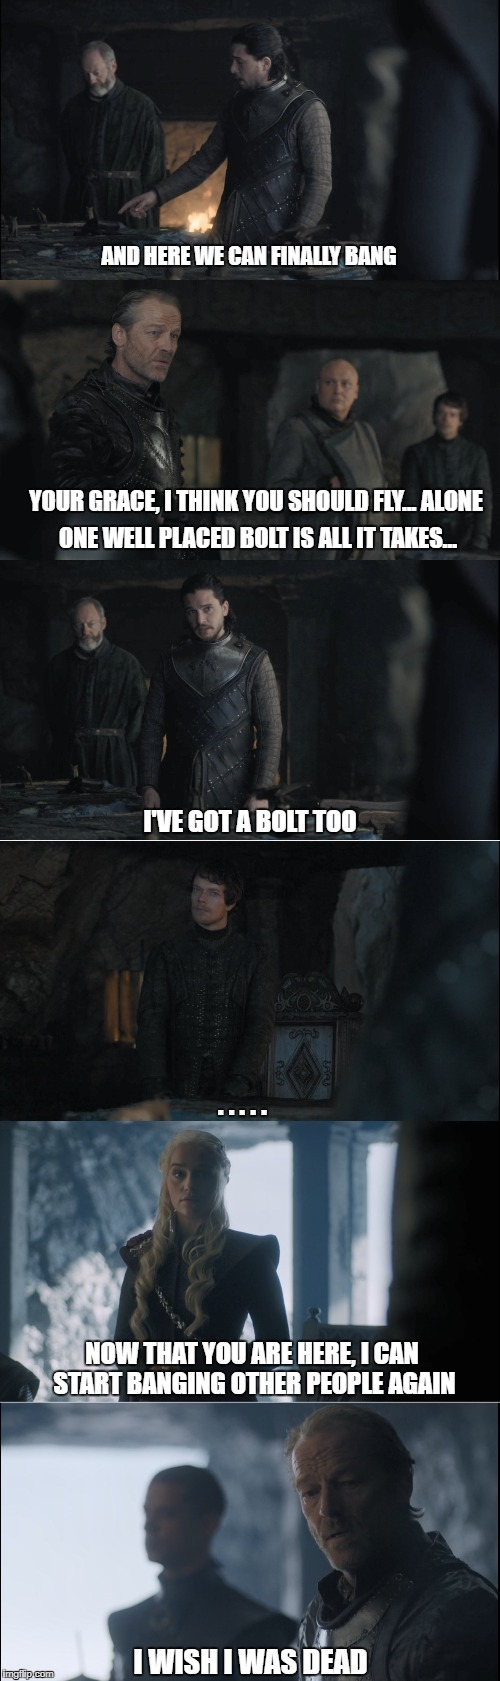 Poor Jorah | ONE WELL PLACED BOLT IS ALL IT TAKES... AND HERE WE CAN FINALLY BANG YOUR GRACE, I THINK YOU SHOULD FLY... ALONE I'VE GOT A BOLT TOO . . . . | image tagged in game of thrones | made w/ Imgflip meme maker